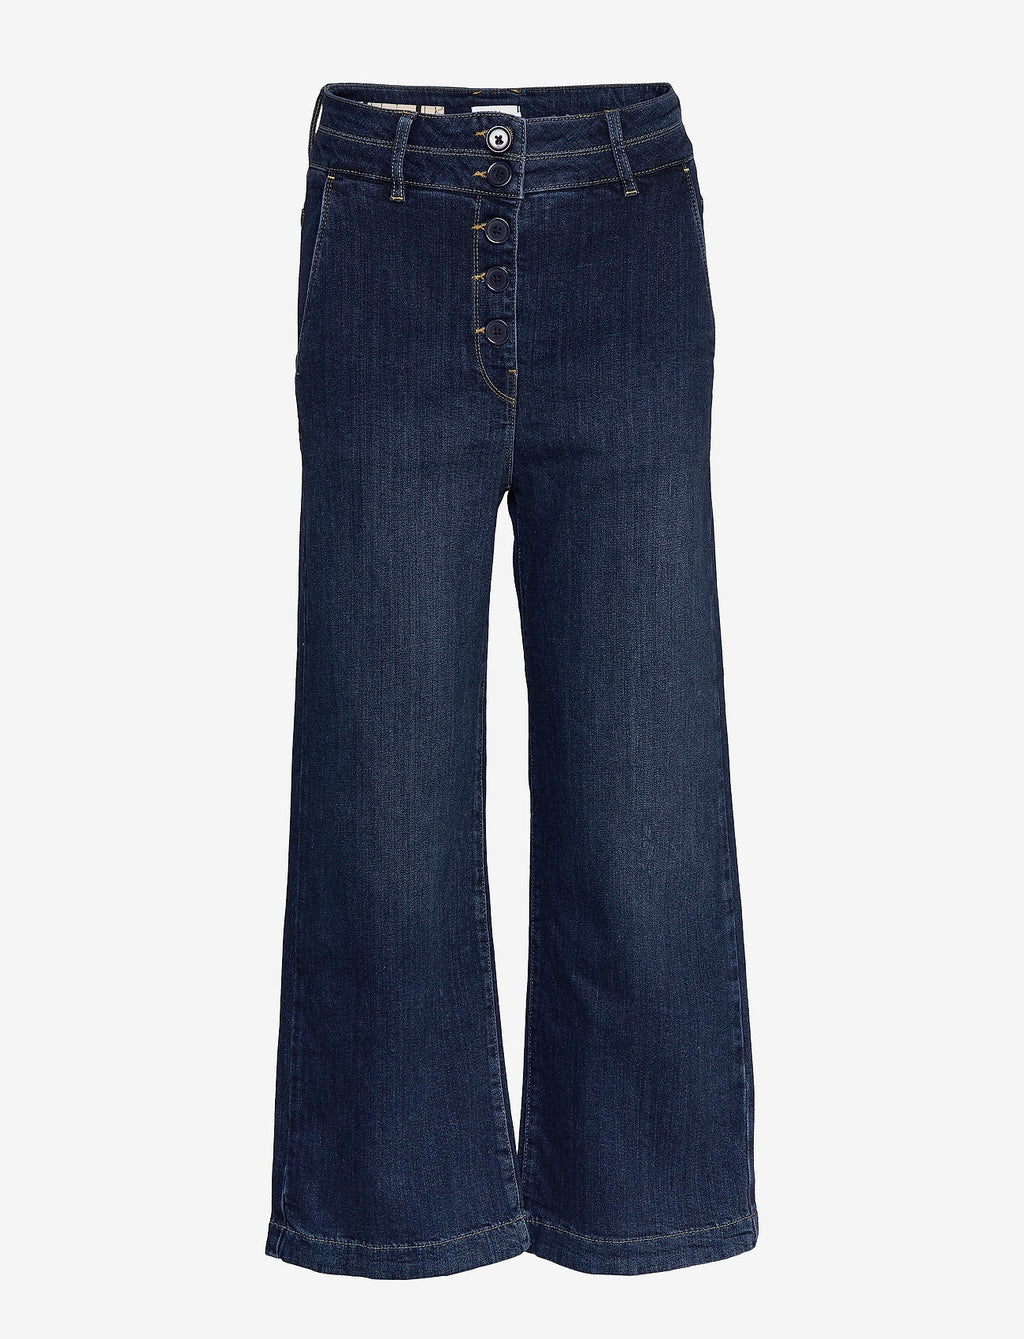 Worn Trousers in Denim Dark Blue